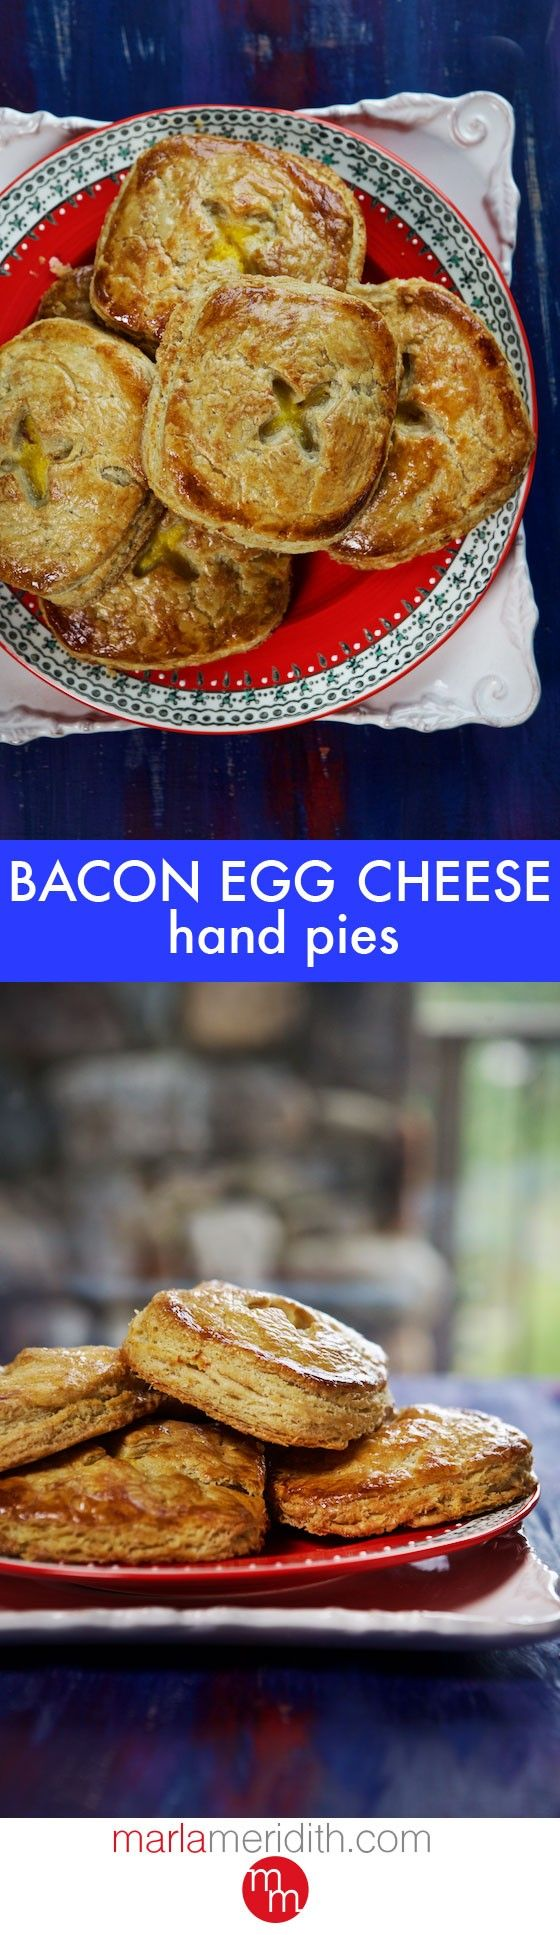 Bacon, Egg & Cheese Hand Pies. This easy & delicious recipe is great for breakfast, brunch & lunch boxes! MarlaMeridith.com ( @marlameridith )